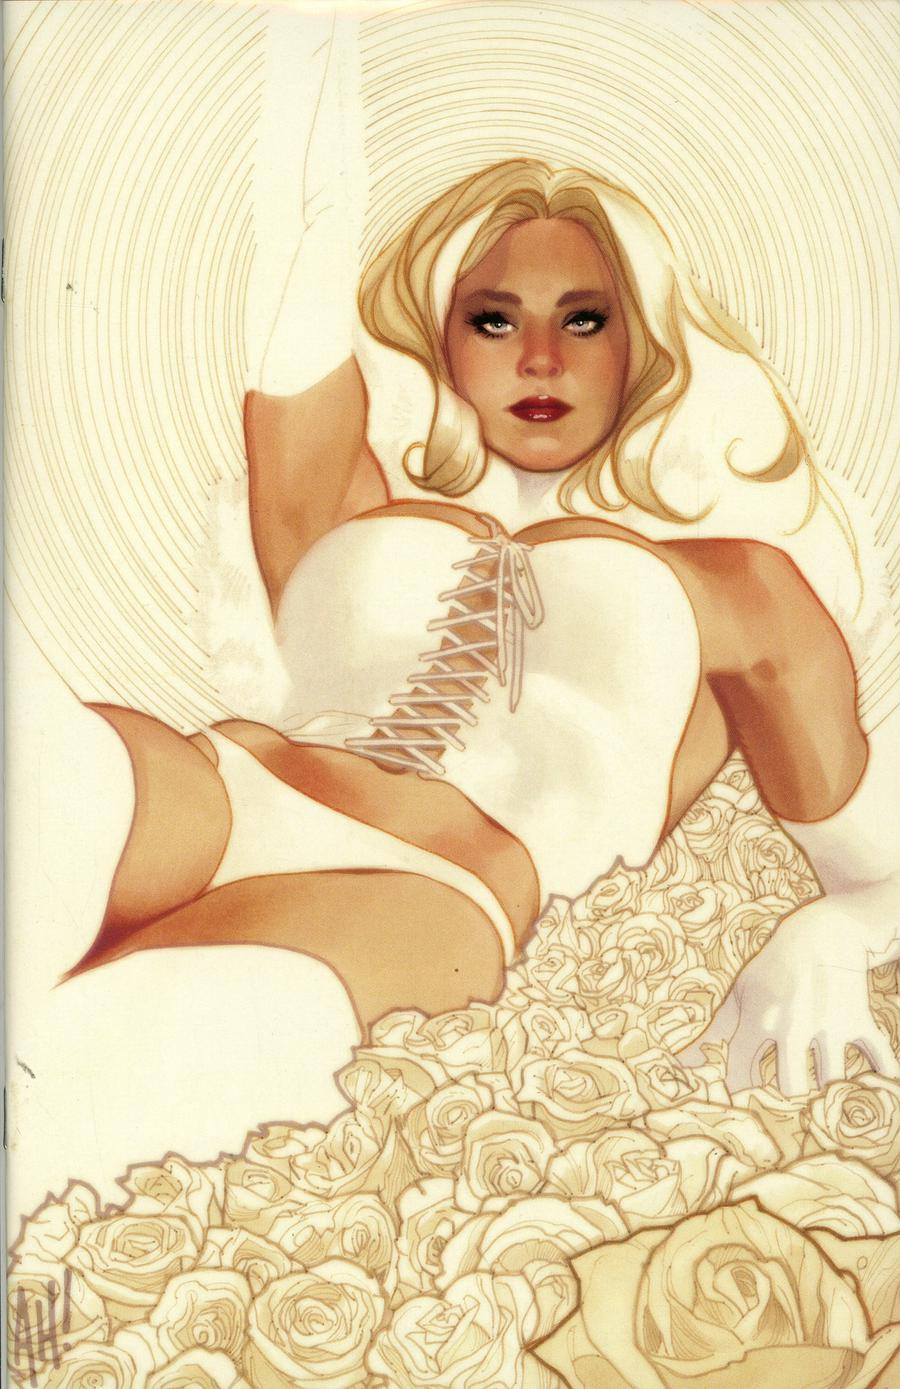 X-Men Black Emma Frost #1 Cover G Adam Hughes Convention Exclusive Virgin Variant Cover